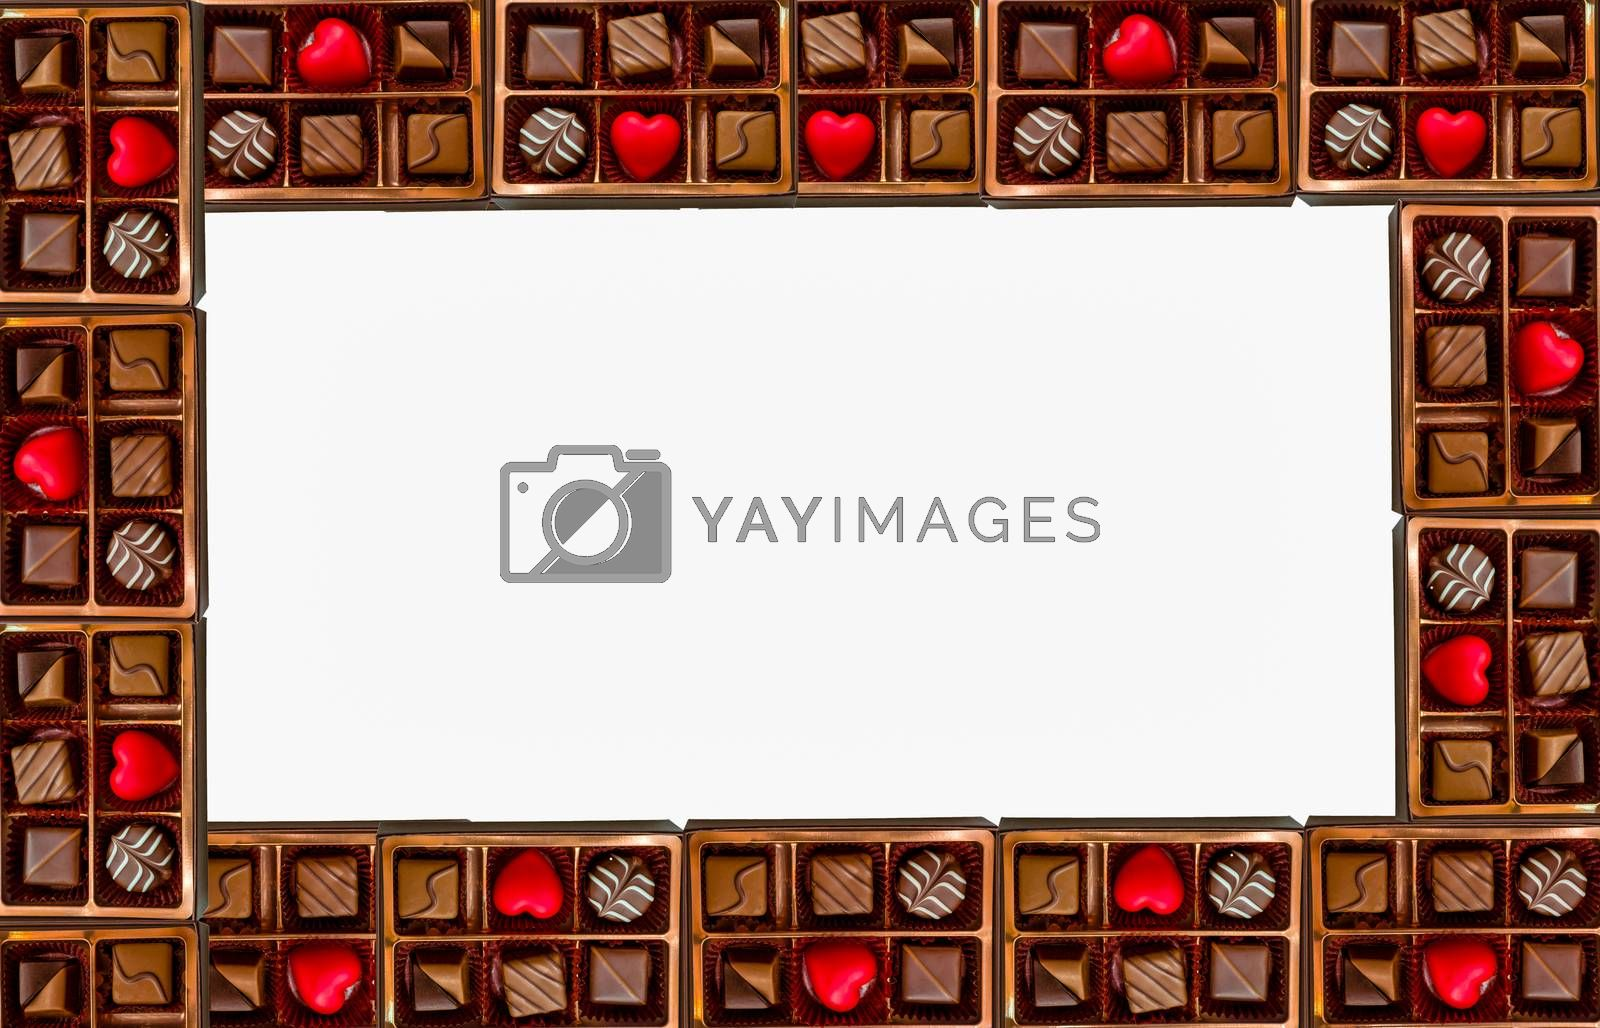 Frame of assorted chocolates with red heart chocolate